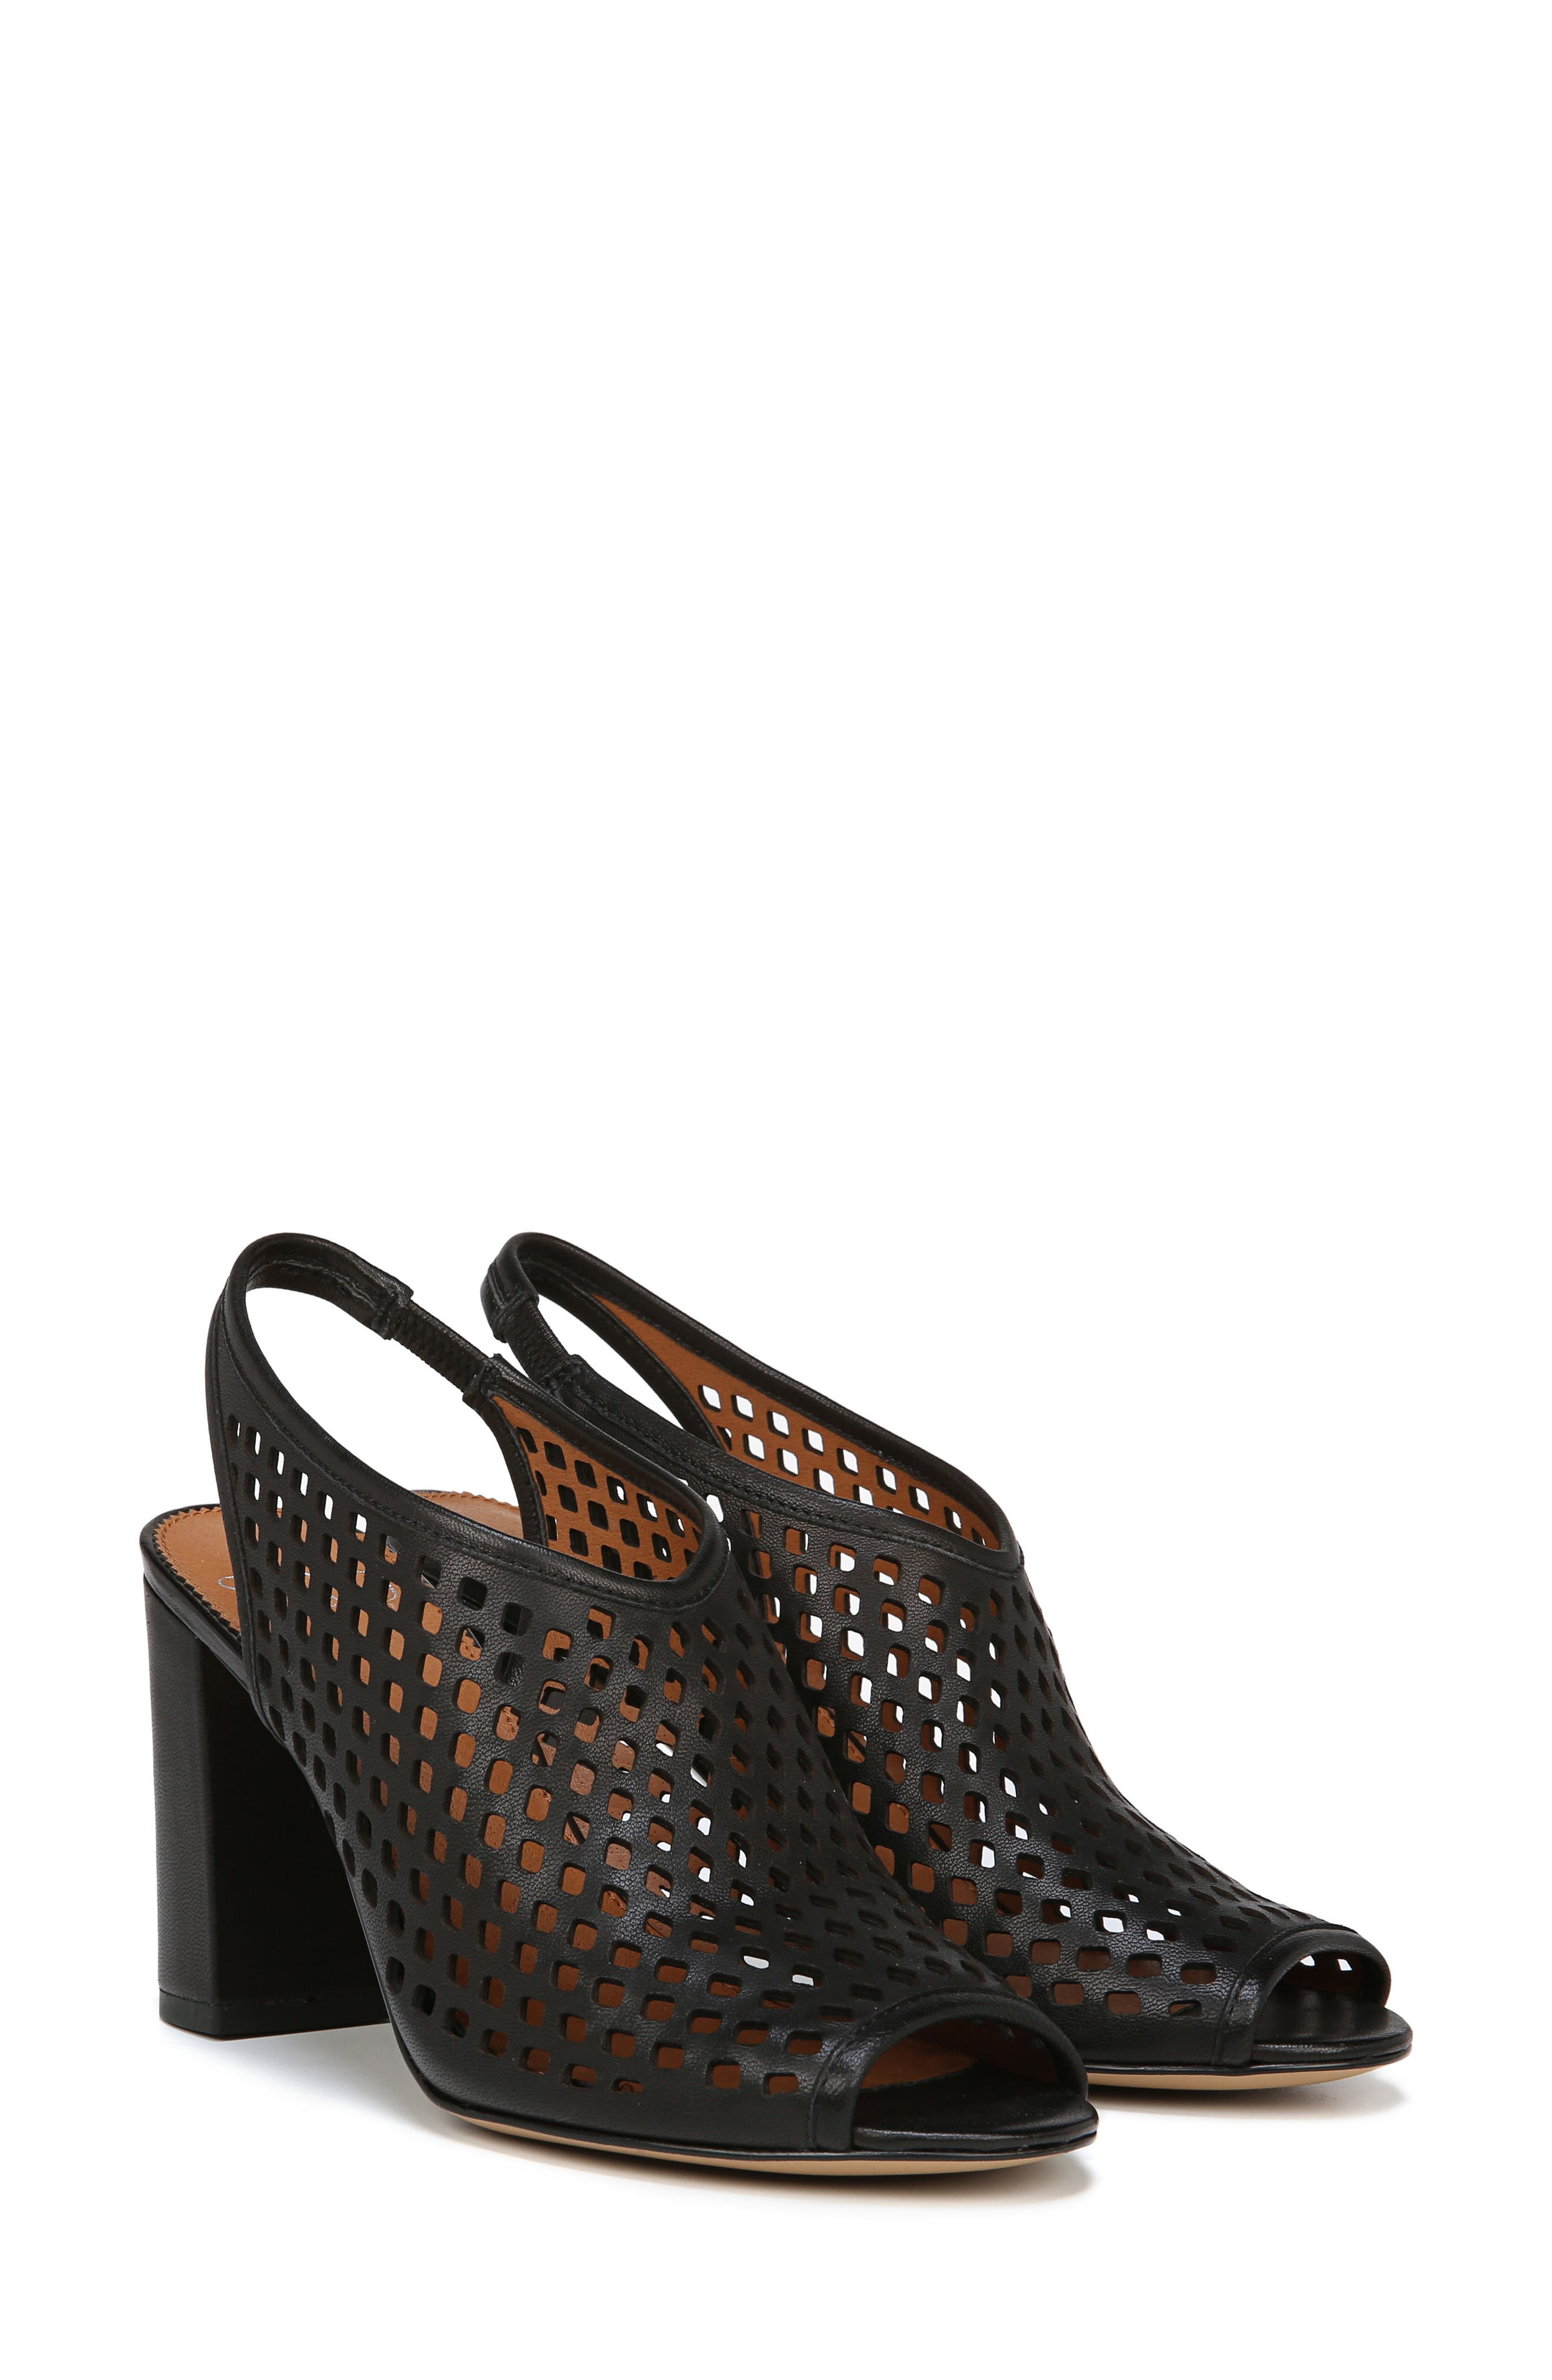 Osbourne Perforated Slingback Sandal,                             Alternate thumbnail 8, color,                             BLACK LEATHER